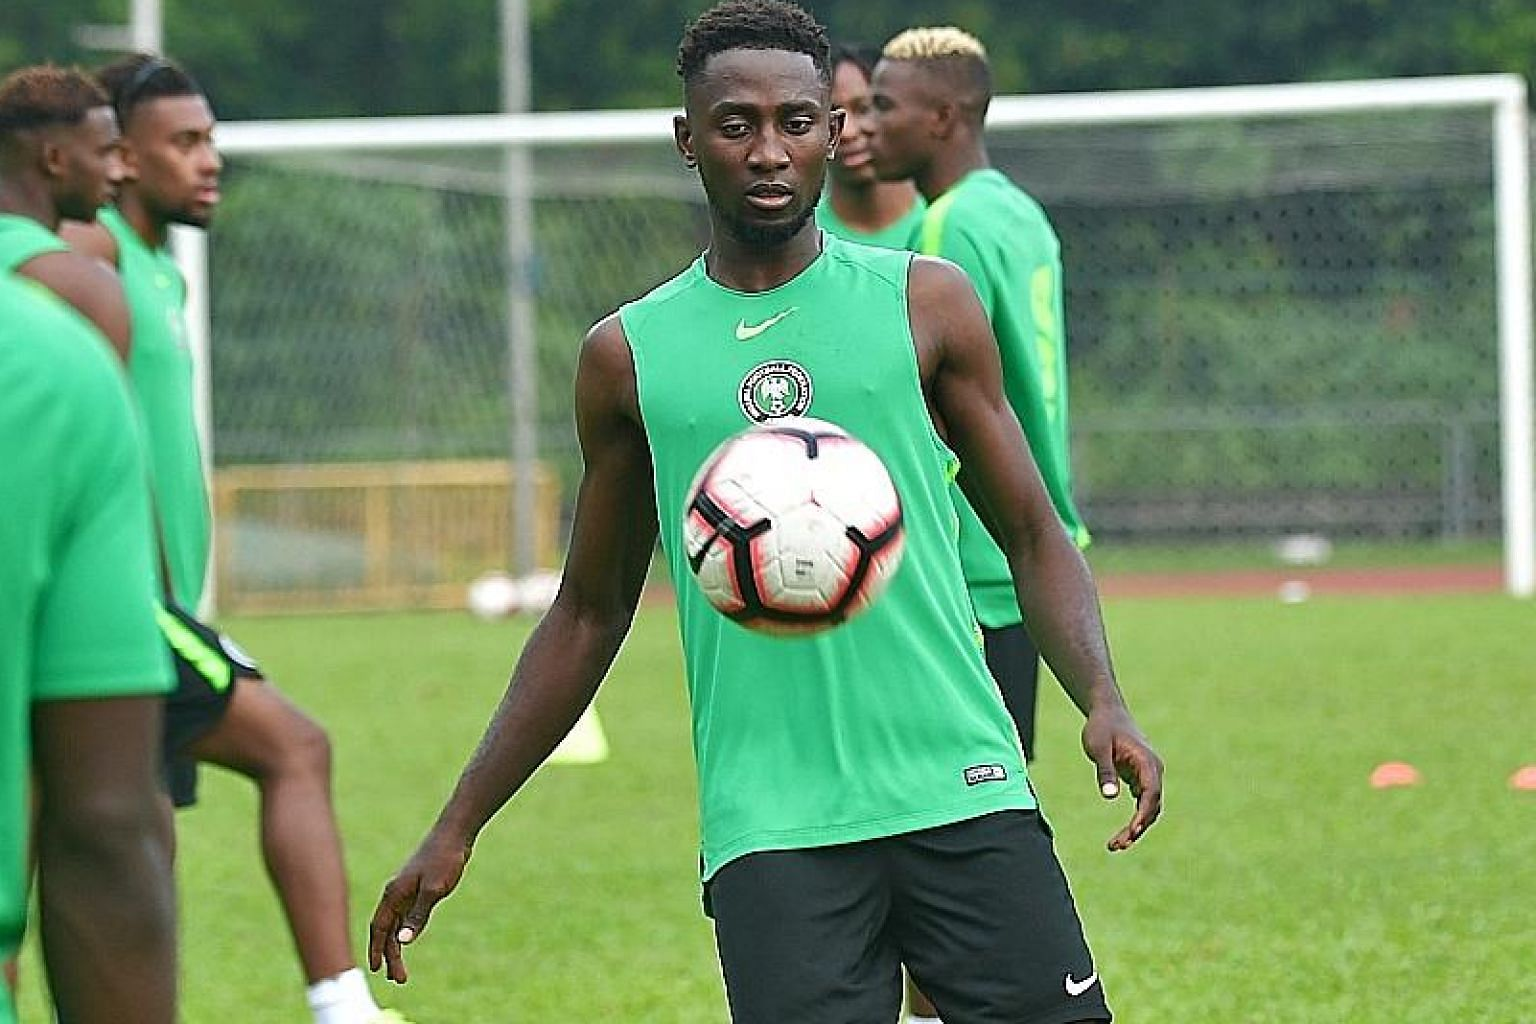 Wilfred Ndidi training with his Nigerian teammates at Bukit Gombak Stadium before their friendly against Brazil. The tough-tackling midfielder has played a key role in Leicester's fine start to the season.